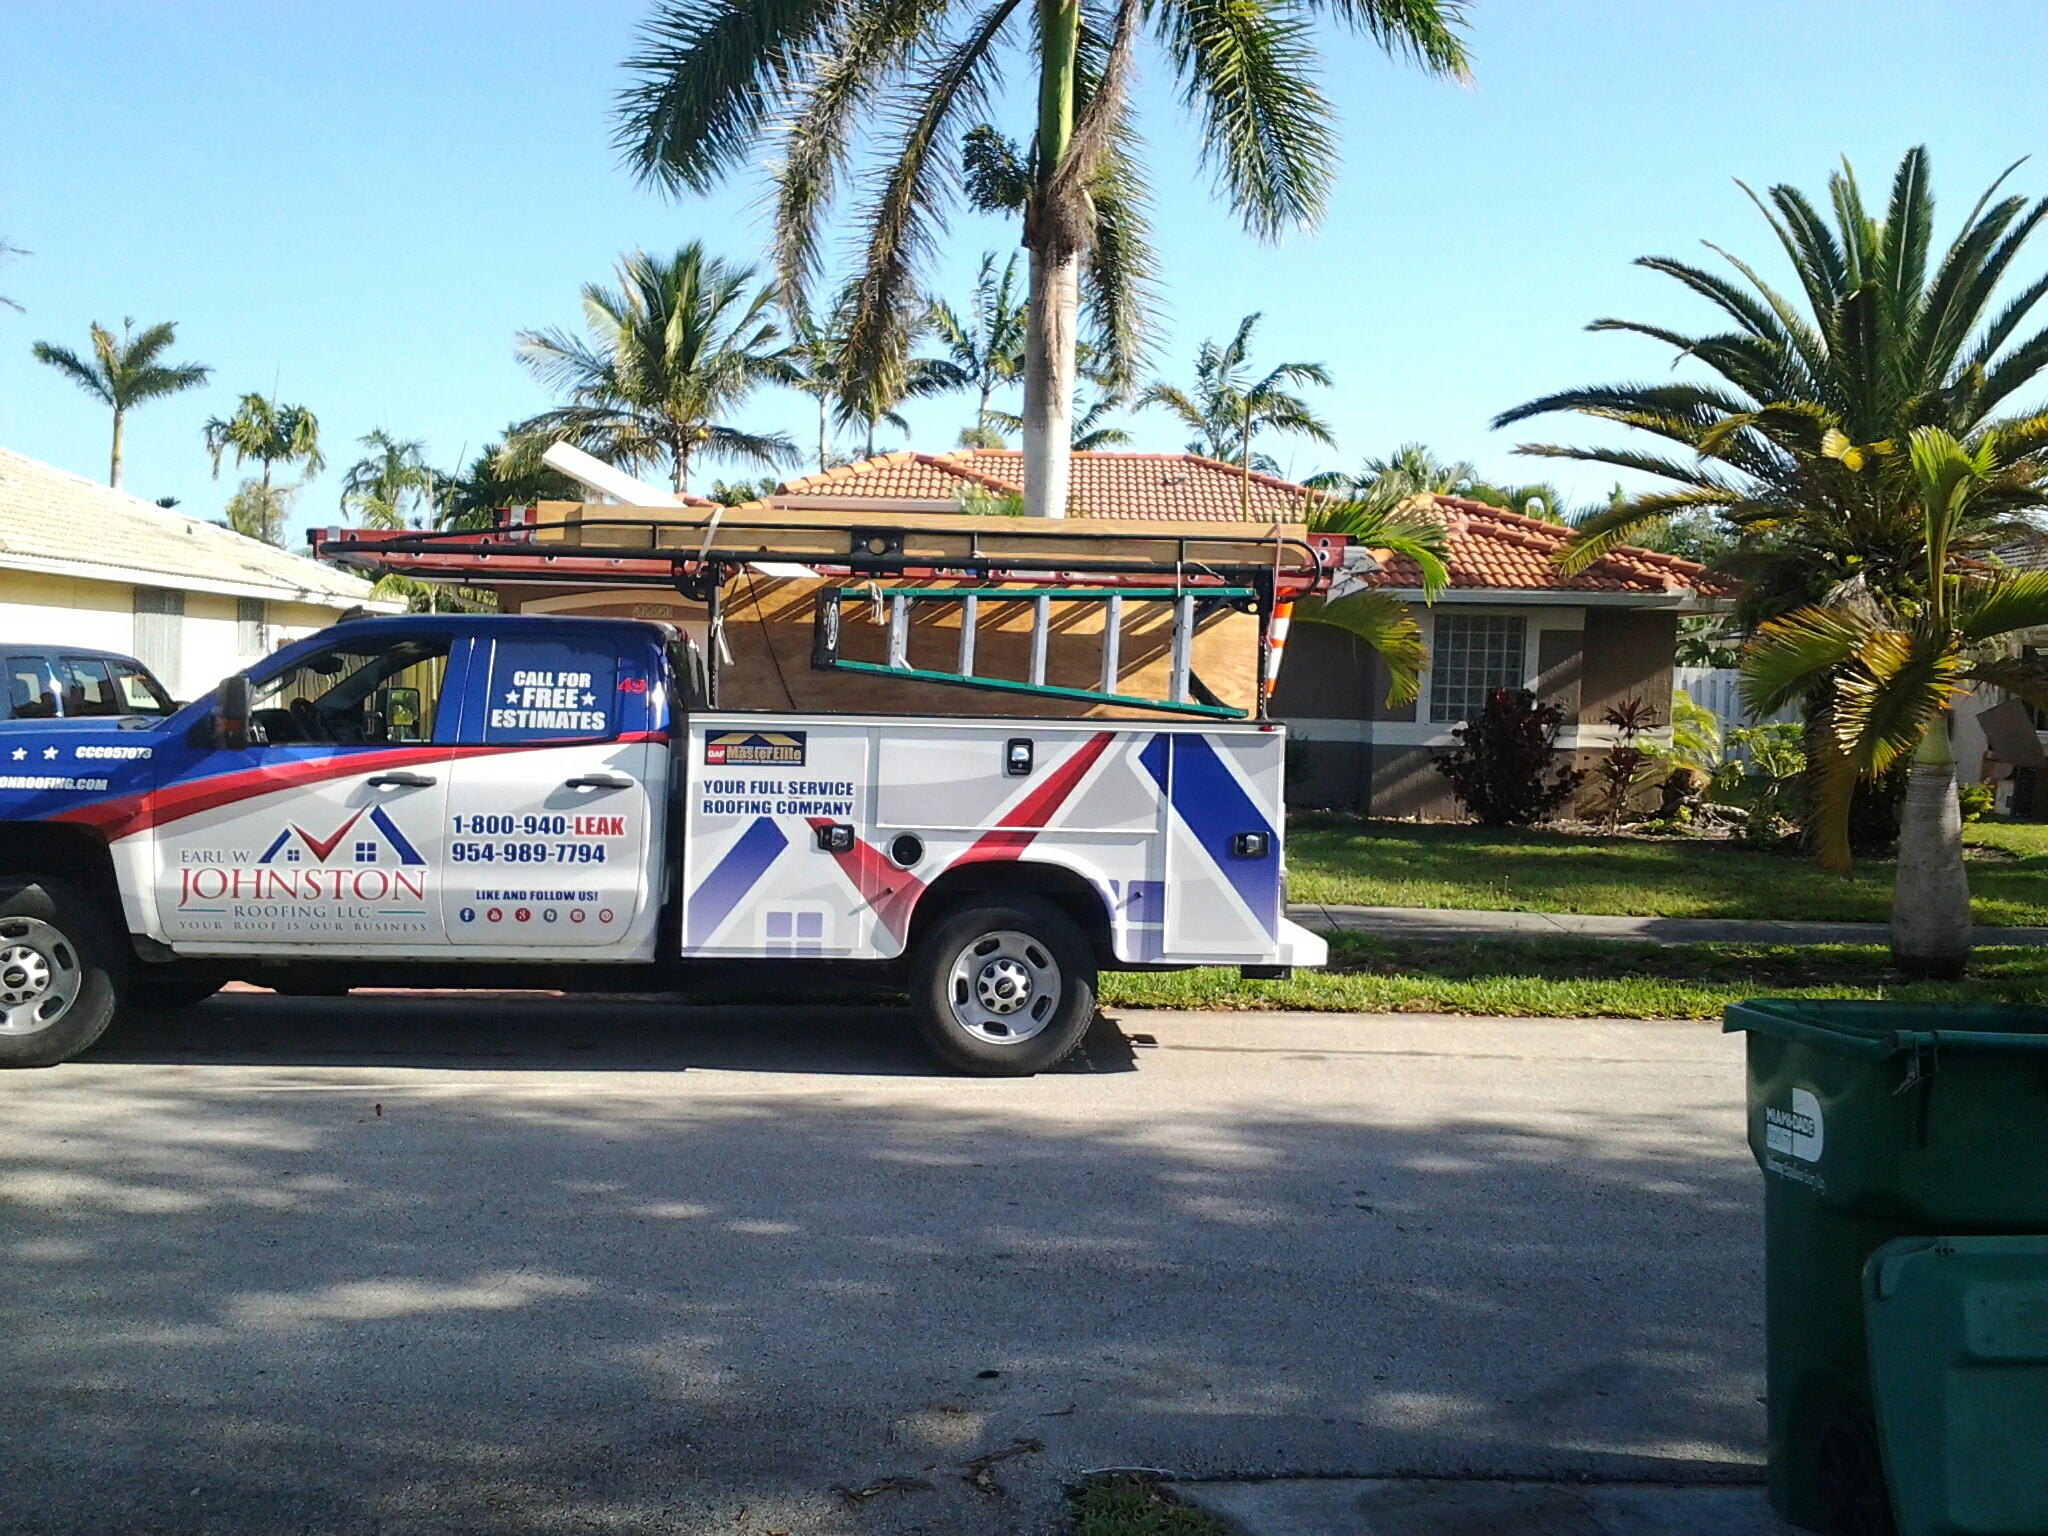 Hallandale Beach, FL - Tile roof repair in the city of miami fl this repair is being done by Earl w Johnston roofing company Jos? end Duane are you repair technicians